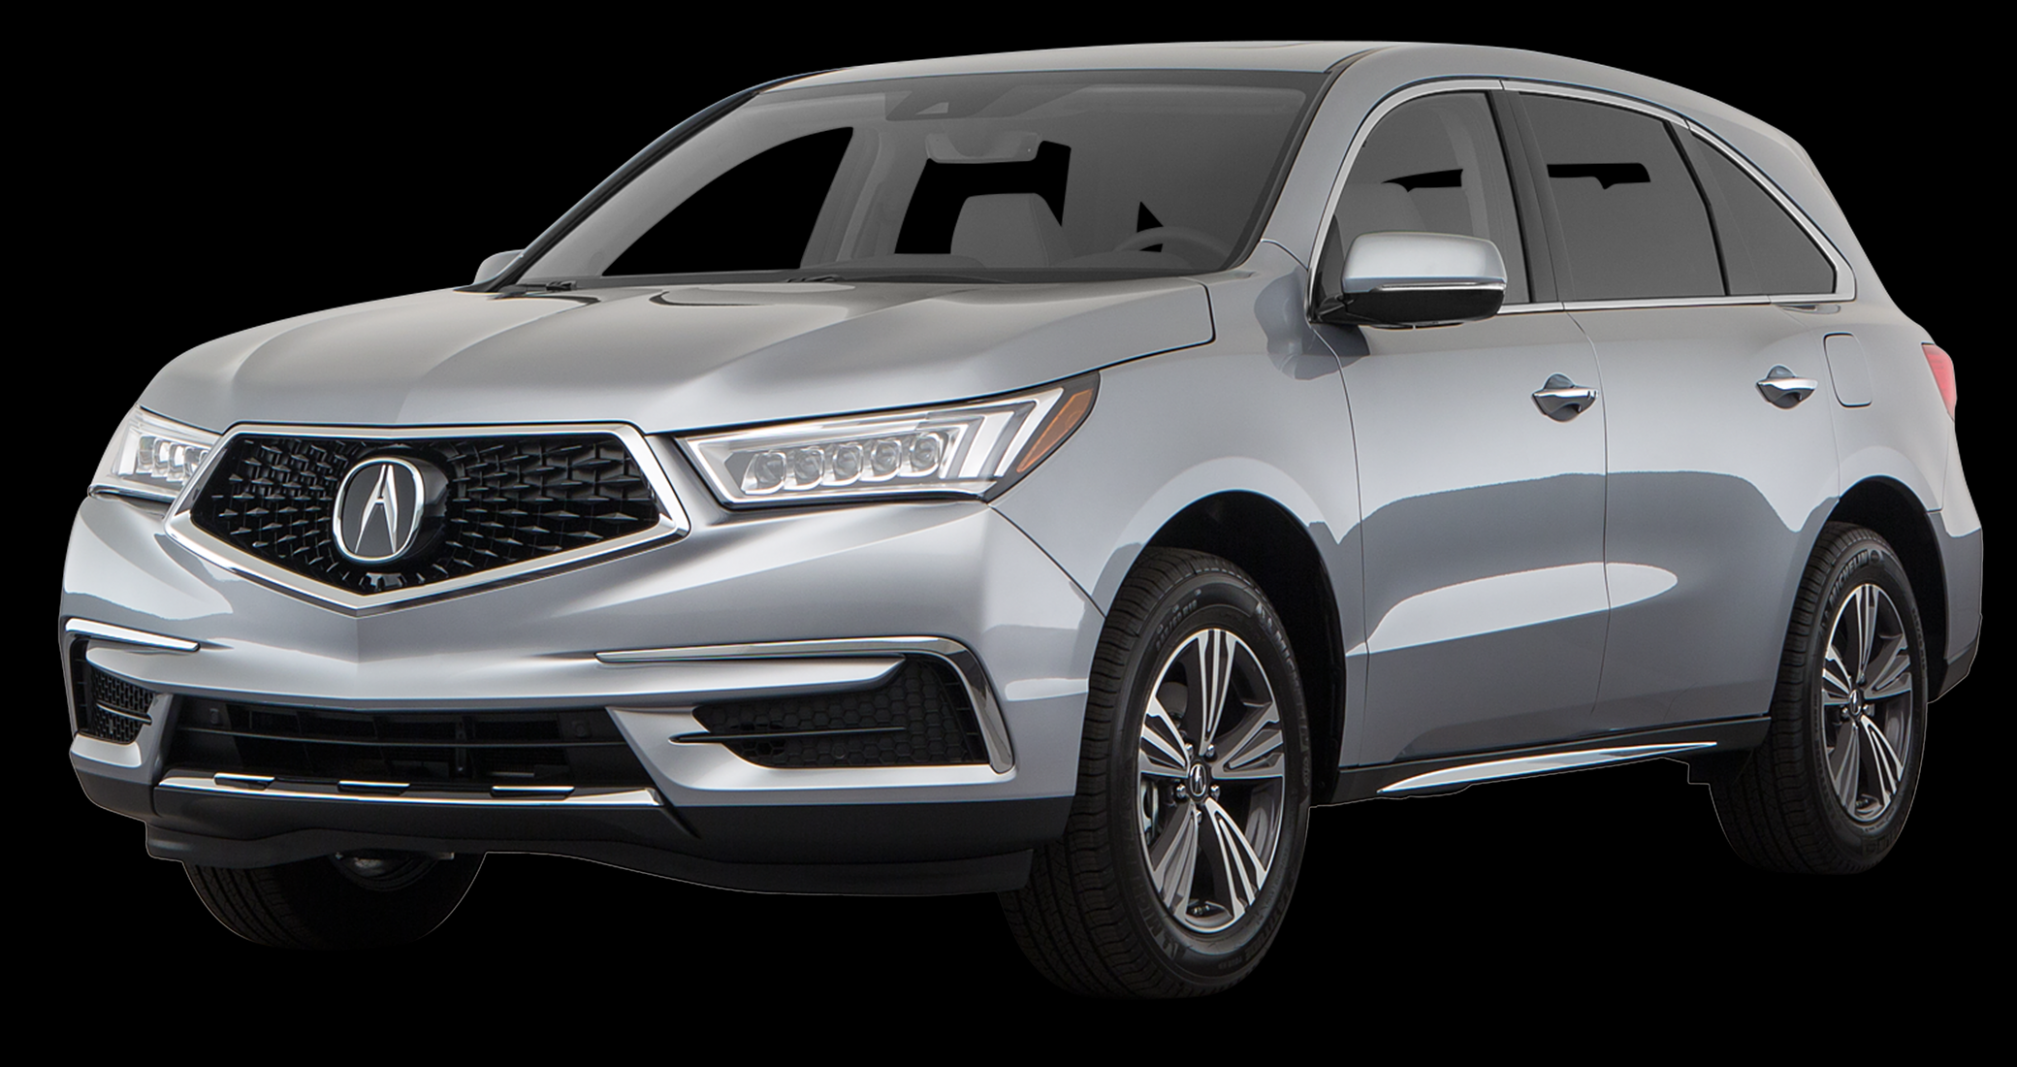 11 Acura MDX Incentives, Specials & Offers in Elmhurst IL - 2020 acura mdx lease deals